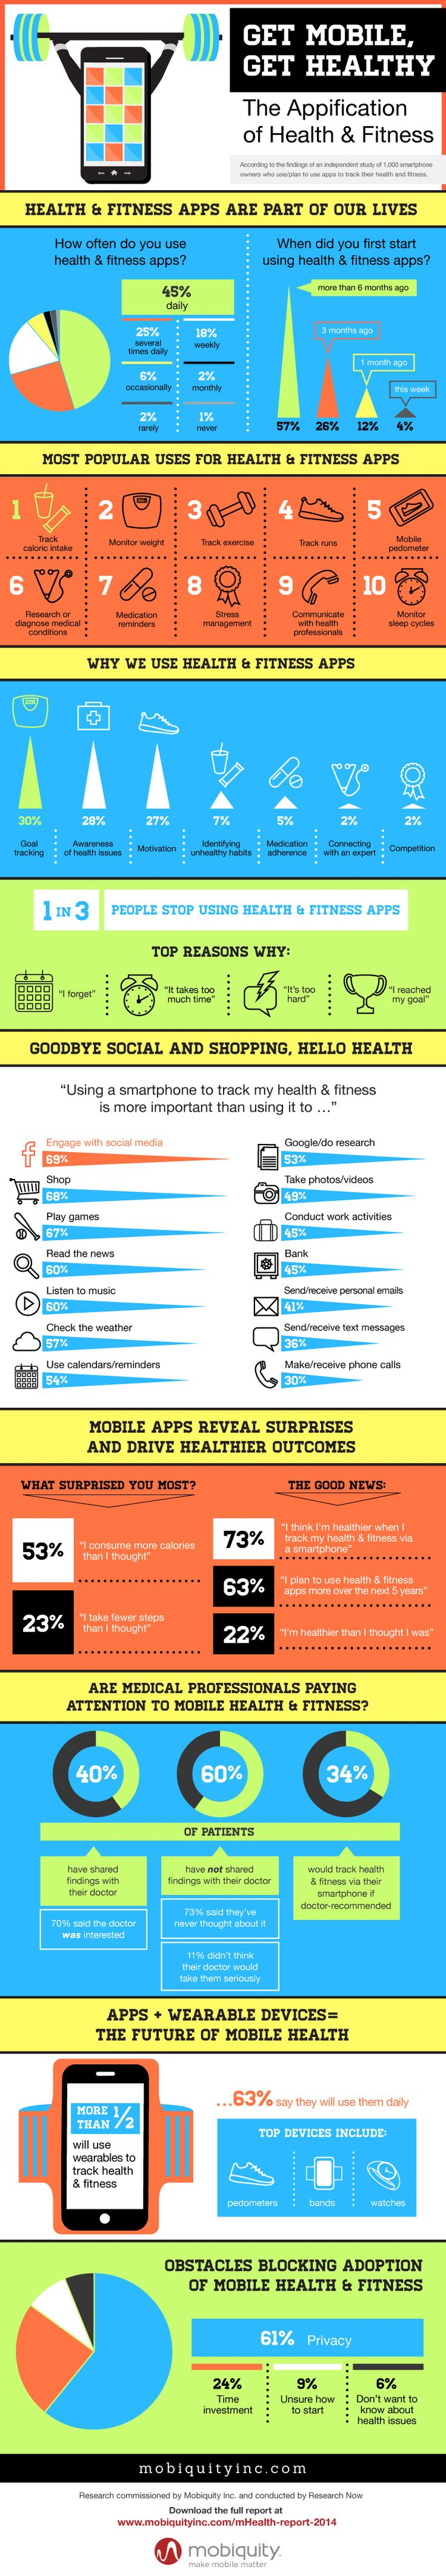 The Appification of Mobile Health & Fitness Infographic